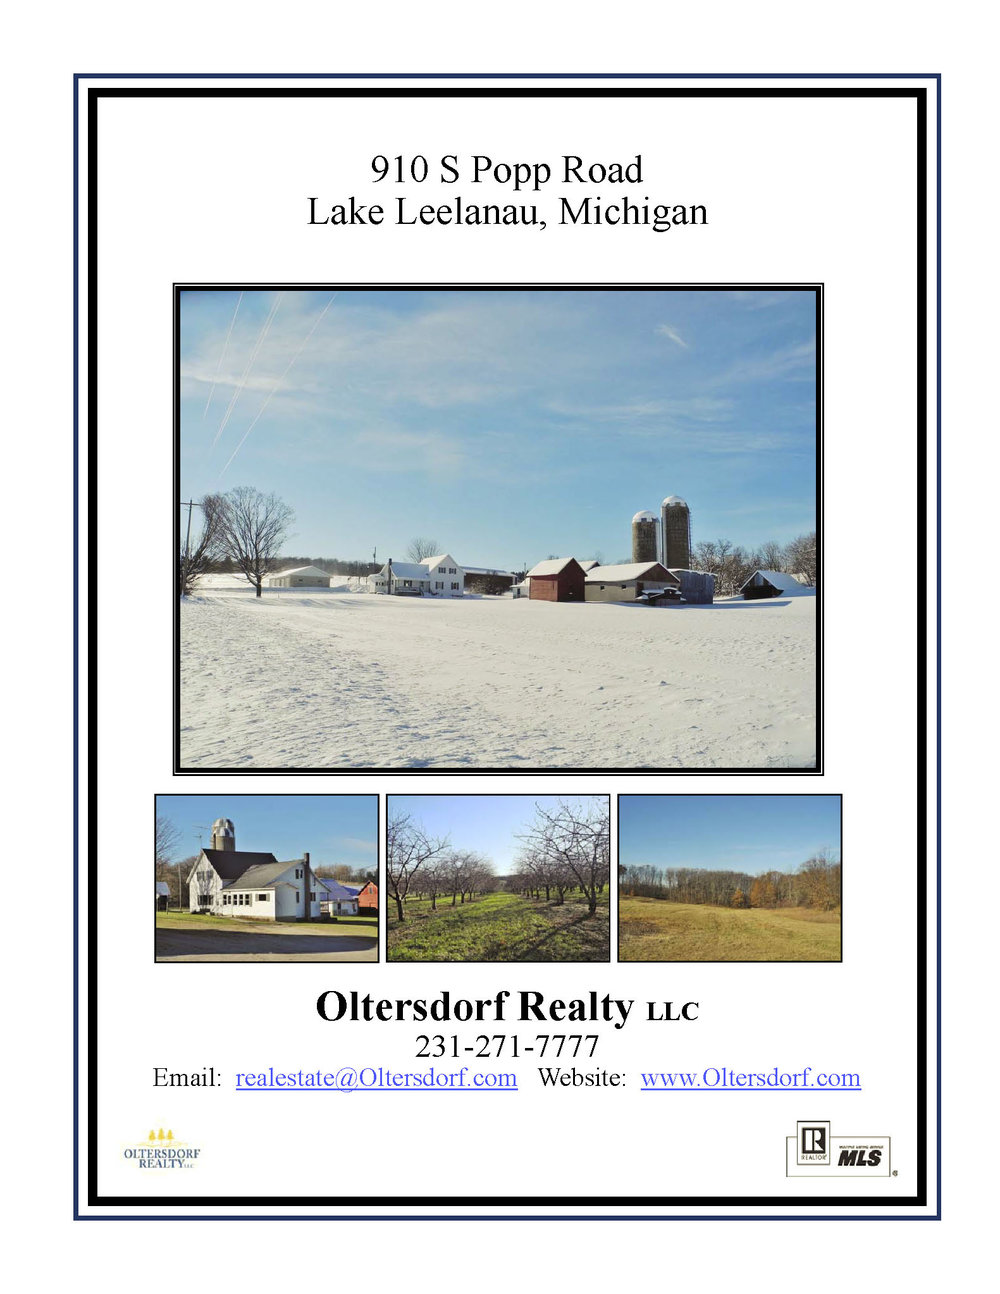 910 S Popp Road - For Sale by Oltersdorf Realty LLC_Page_01.jpg